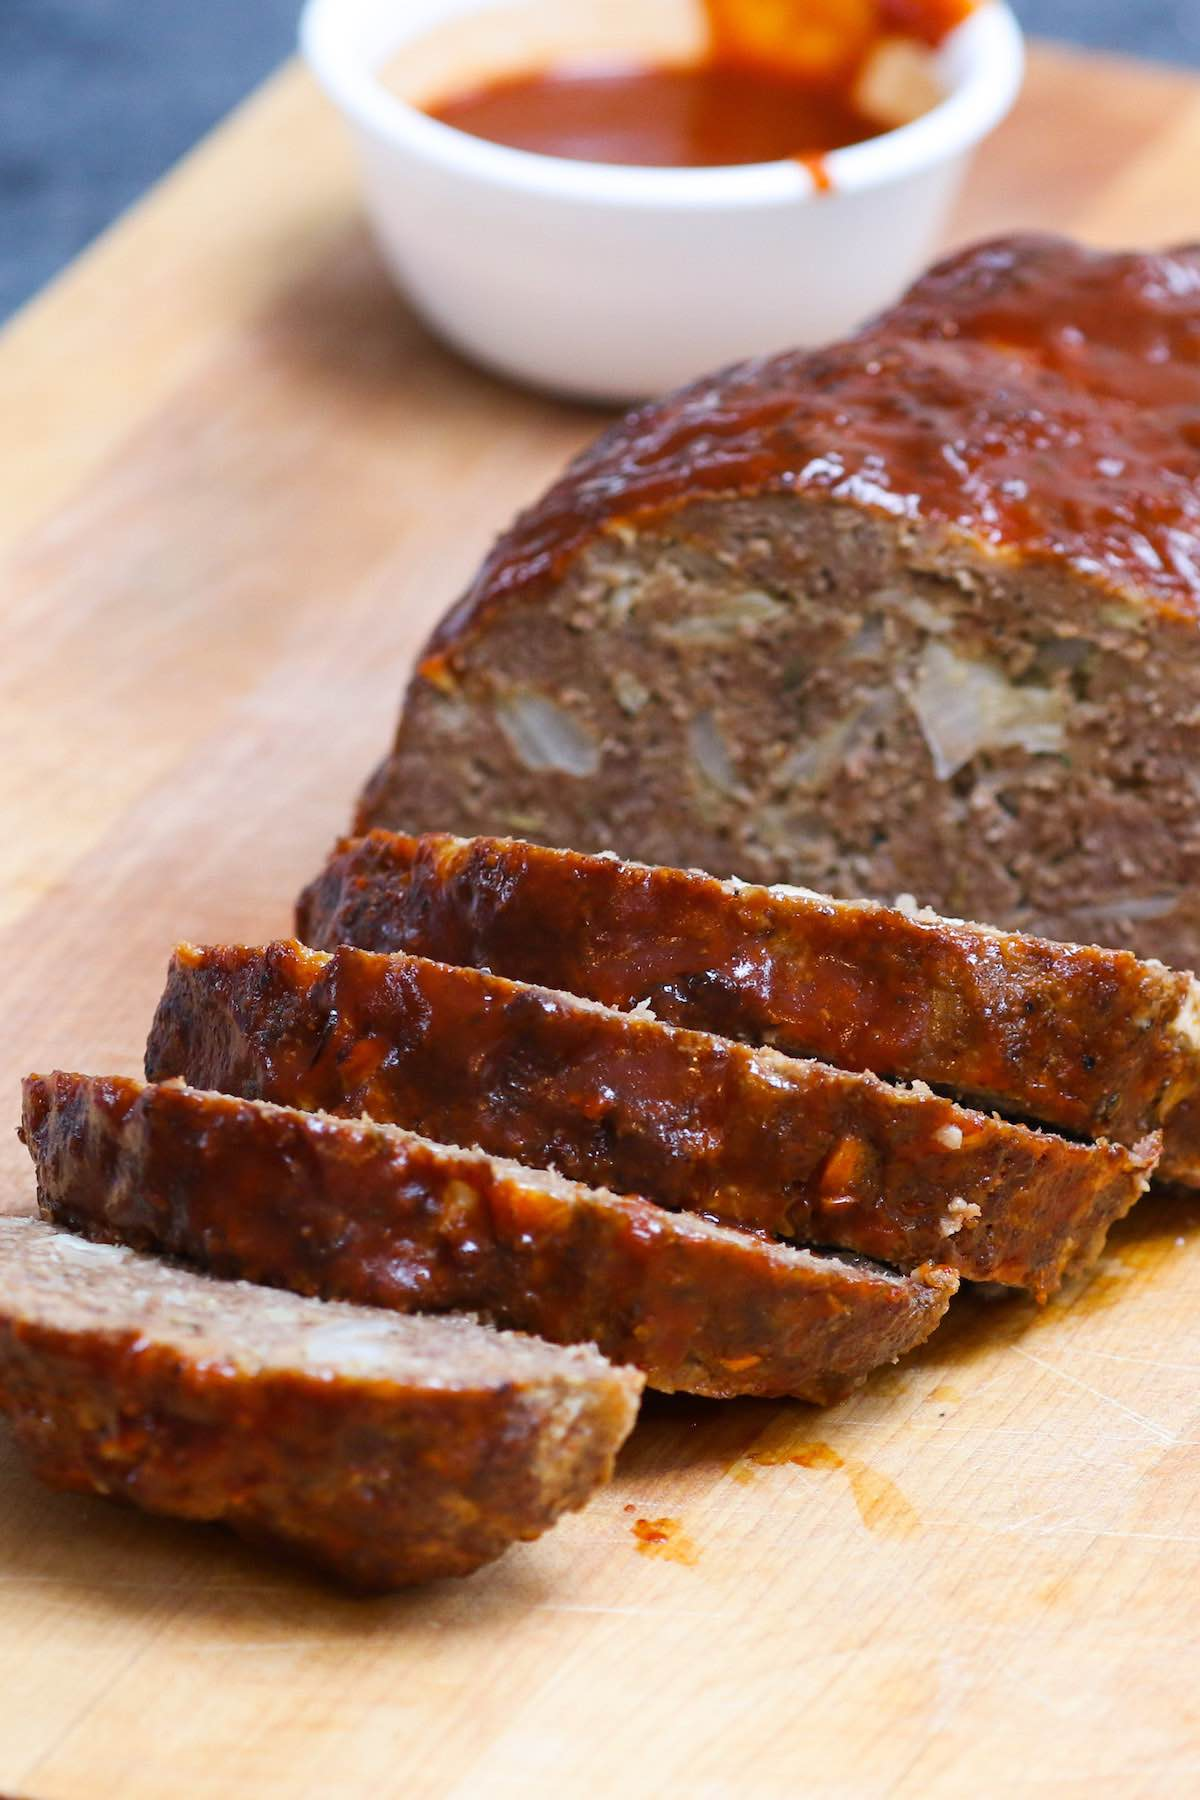 Sliced meatloaf fresh out of the smoker with BBQ sauce on the side